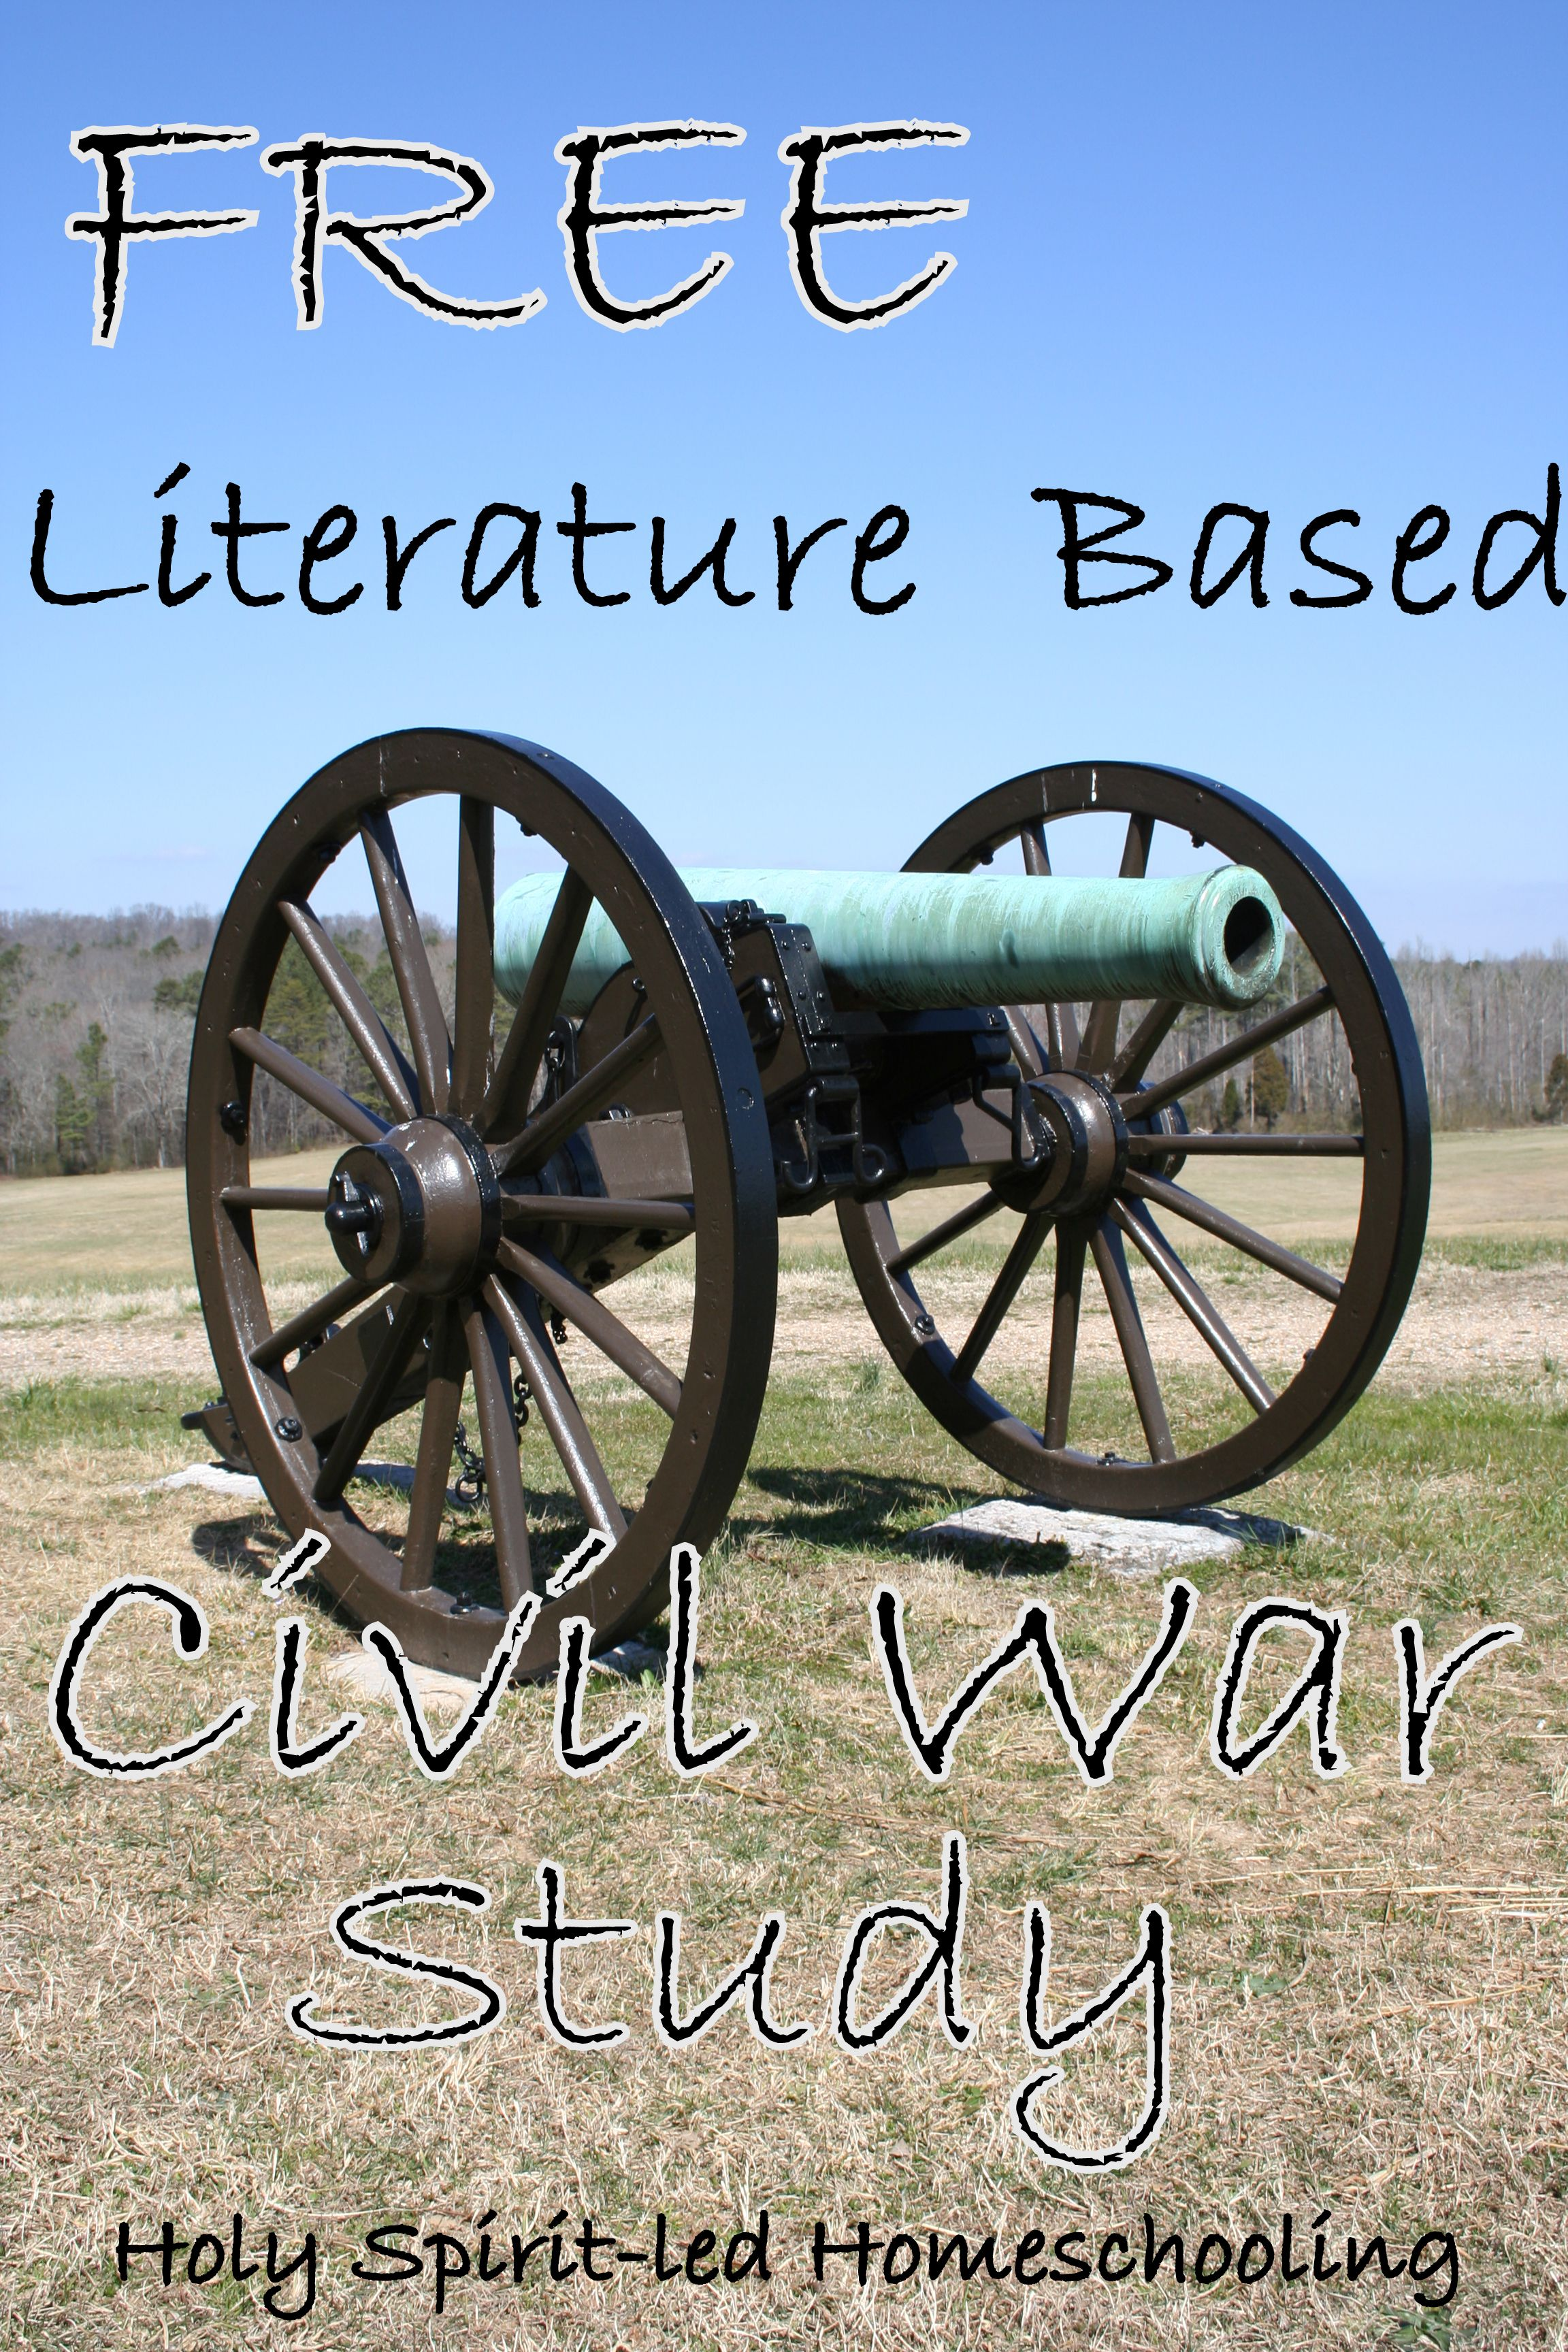 07 25 12 Free Literature Based Curriculum On The Civil War From Holy